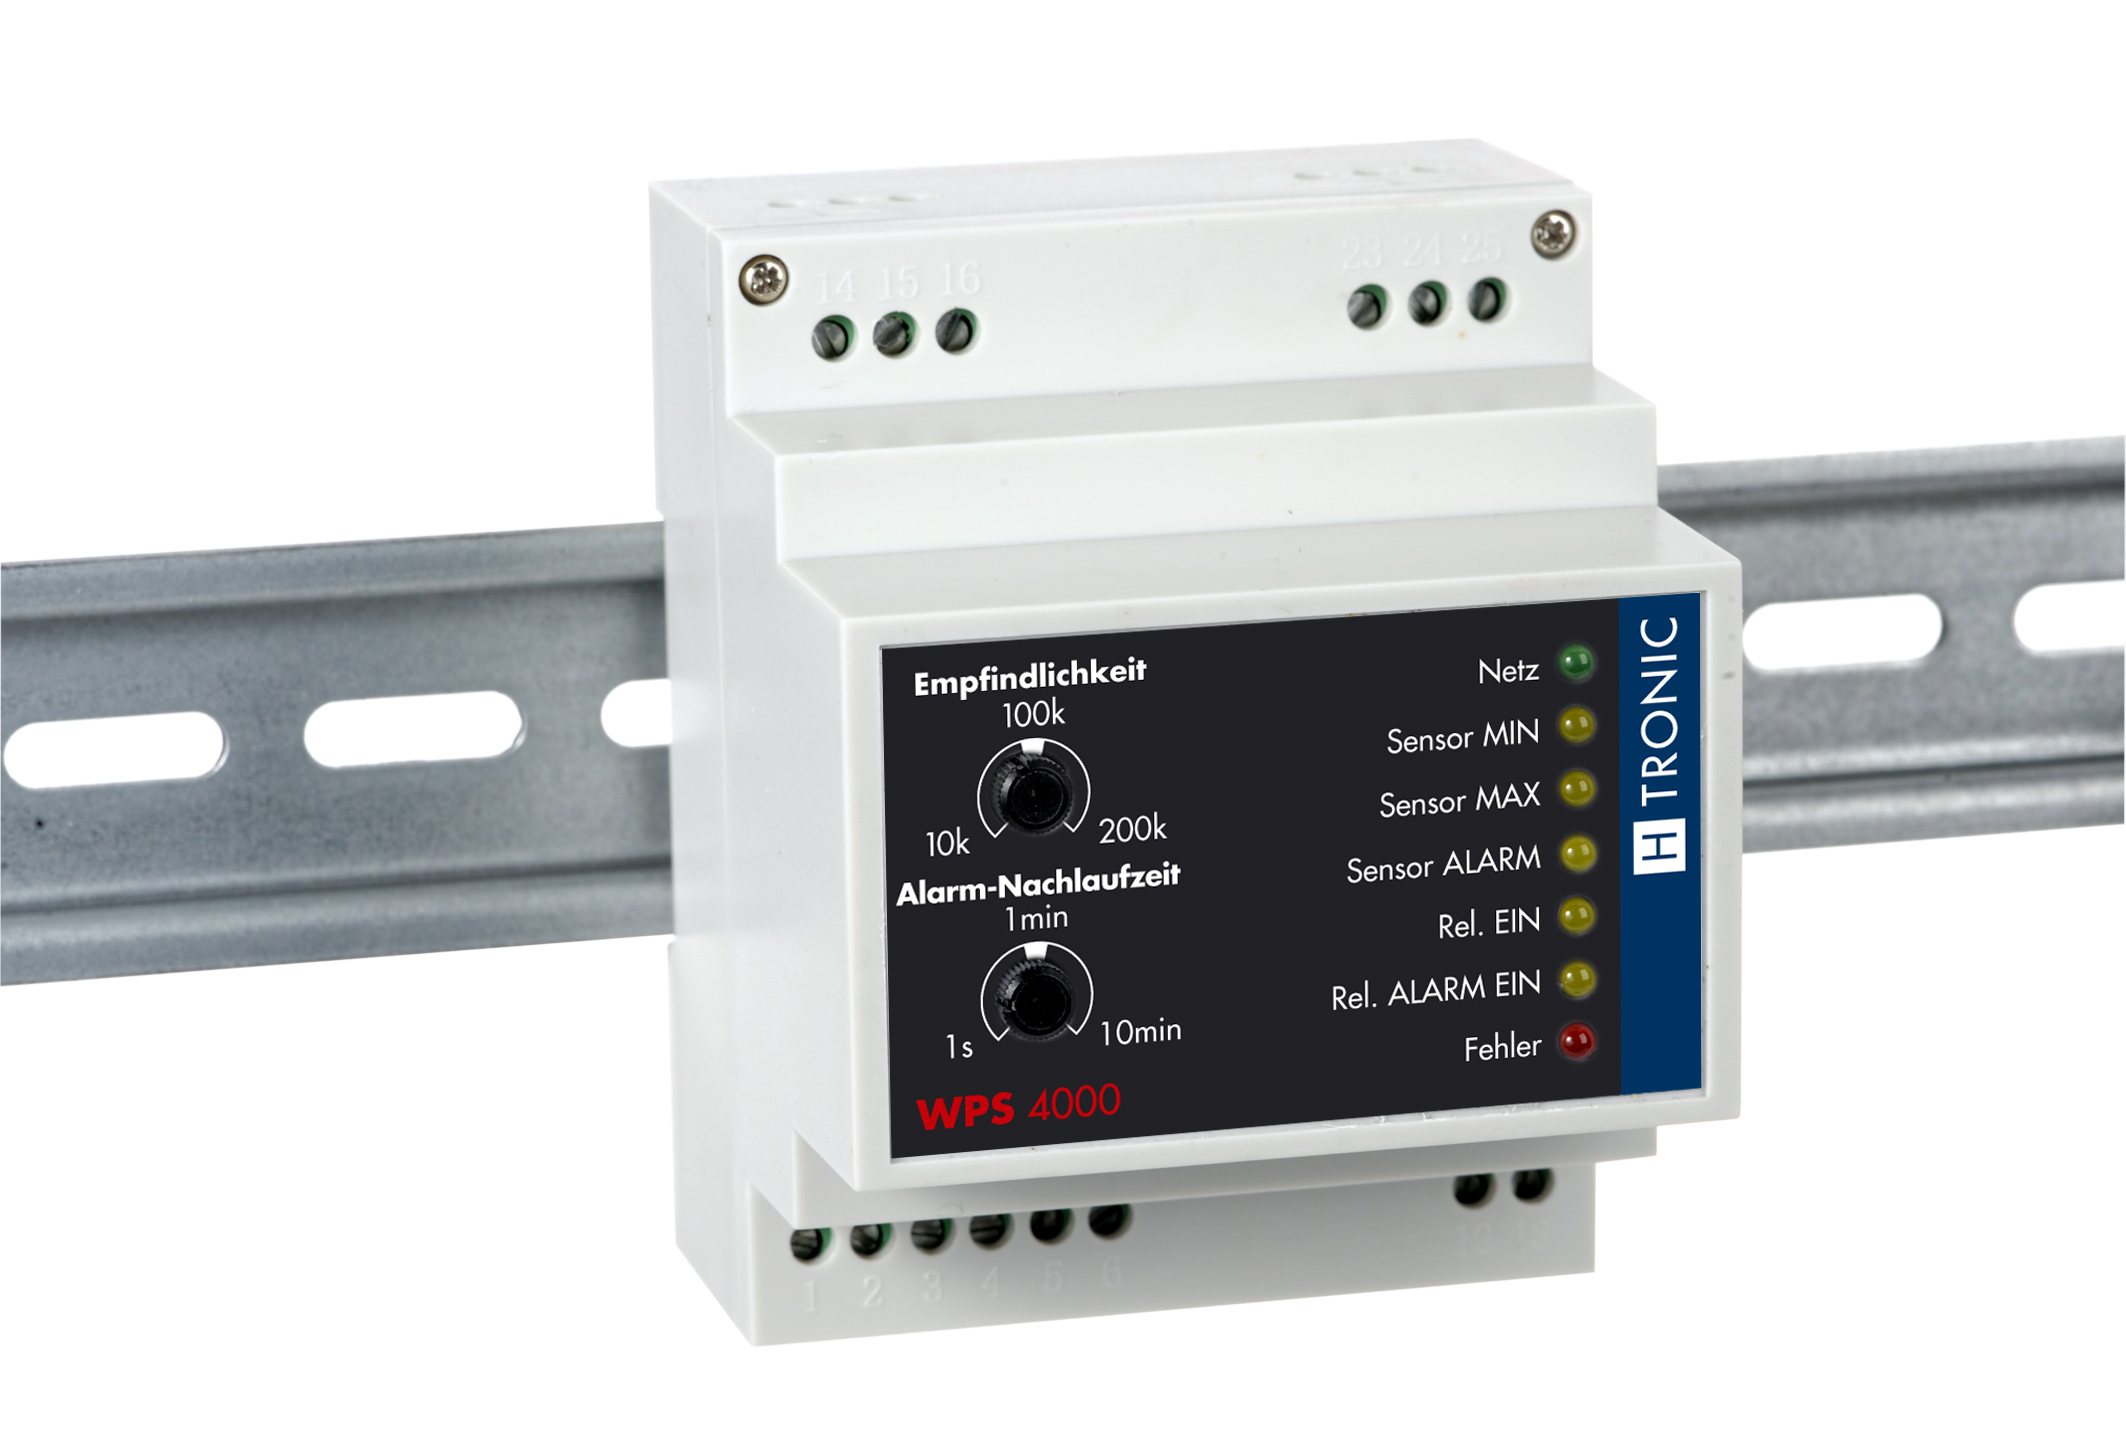 Wps 4000 Water Level Switch H Tronic Ladetechnik Kleebtronics Powersupply User Manual Prospectus High Resolution Product Photo 1